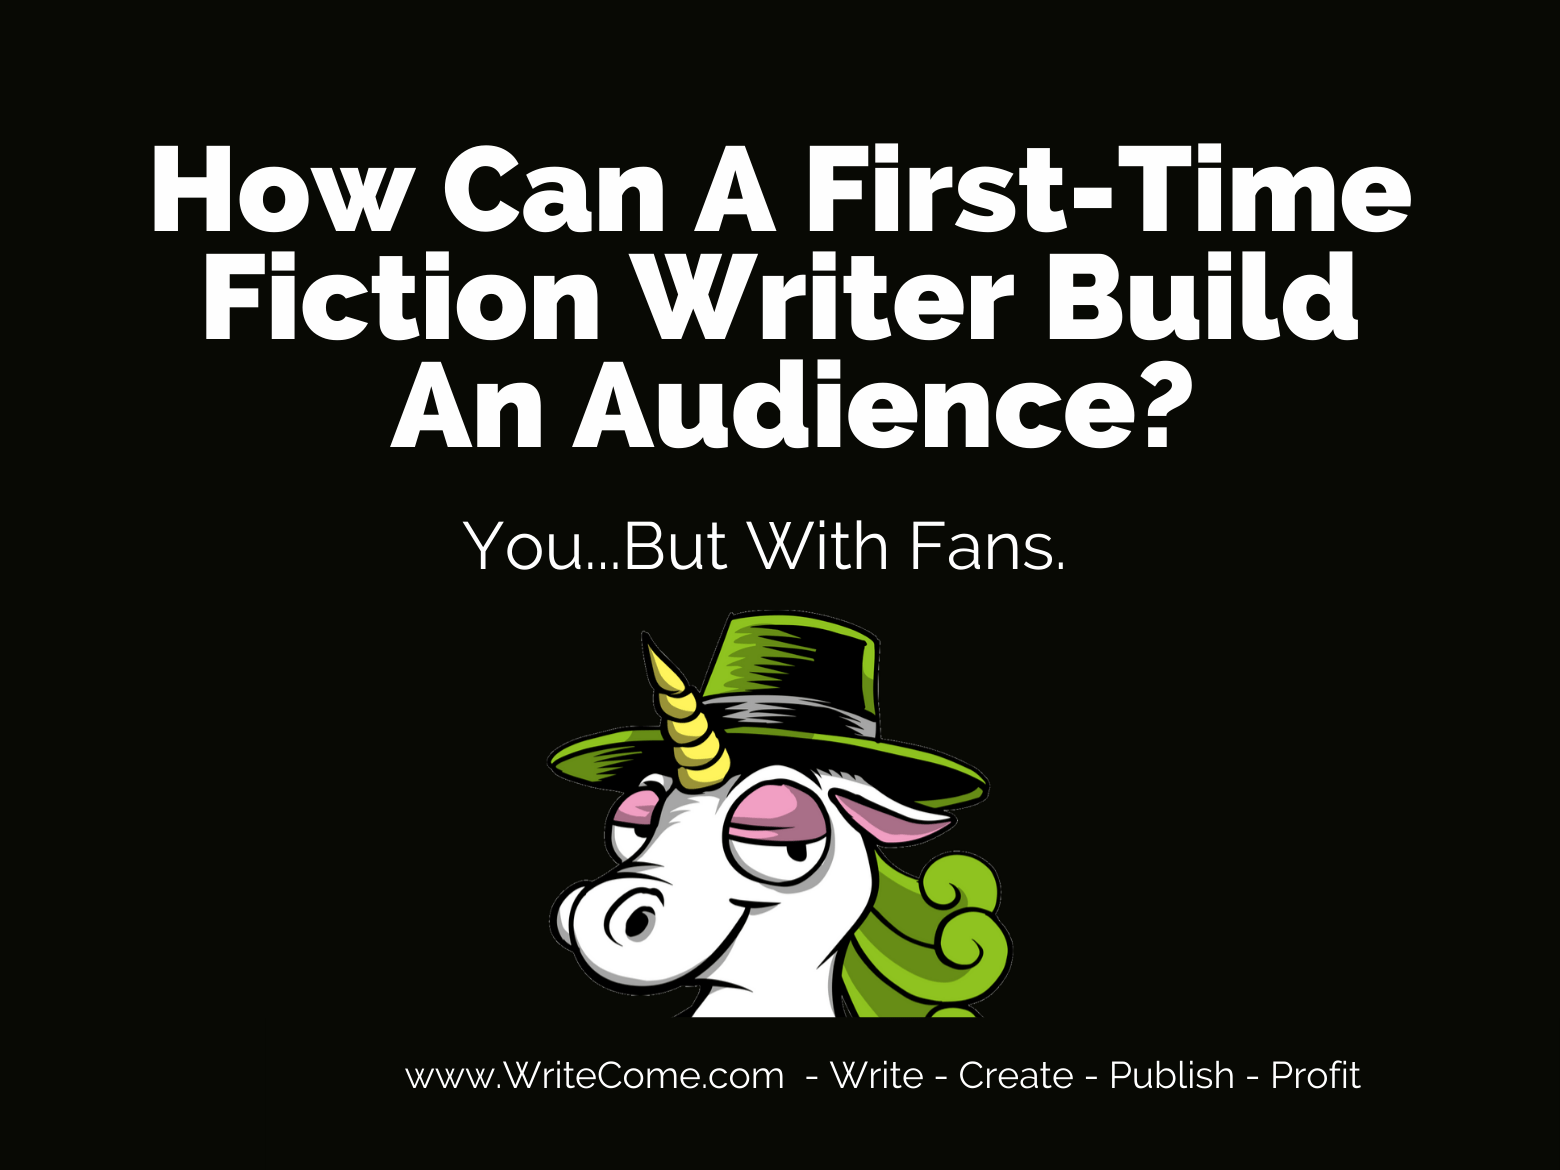 How Can A First-Time Fiction Writer Build An Audience?